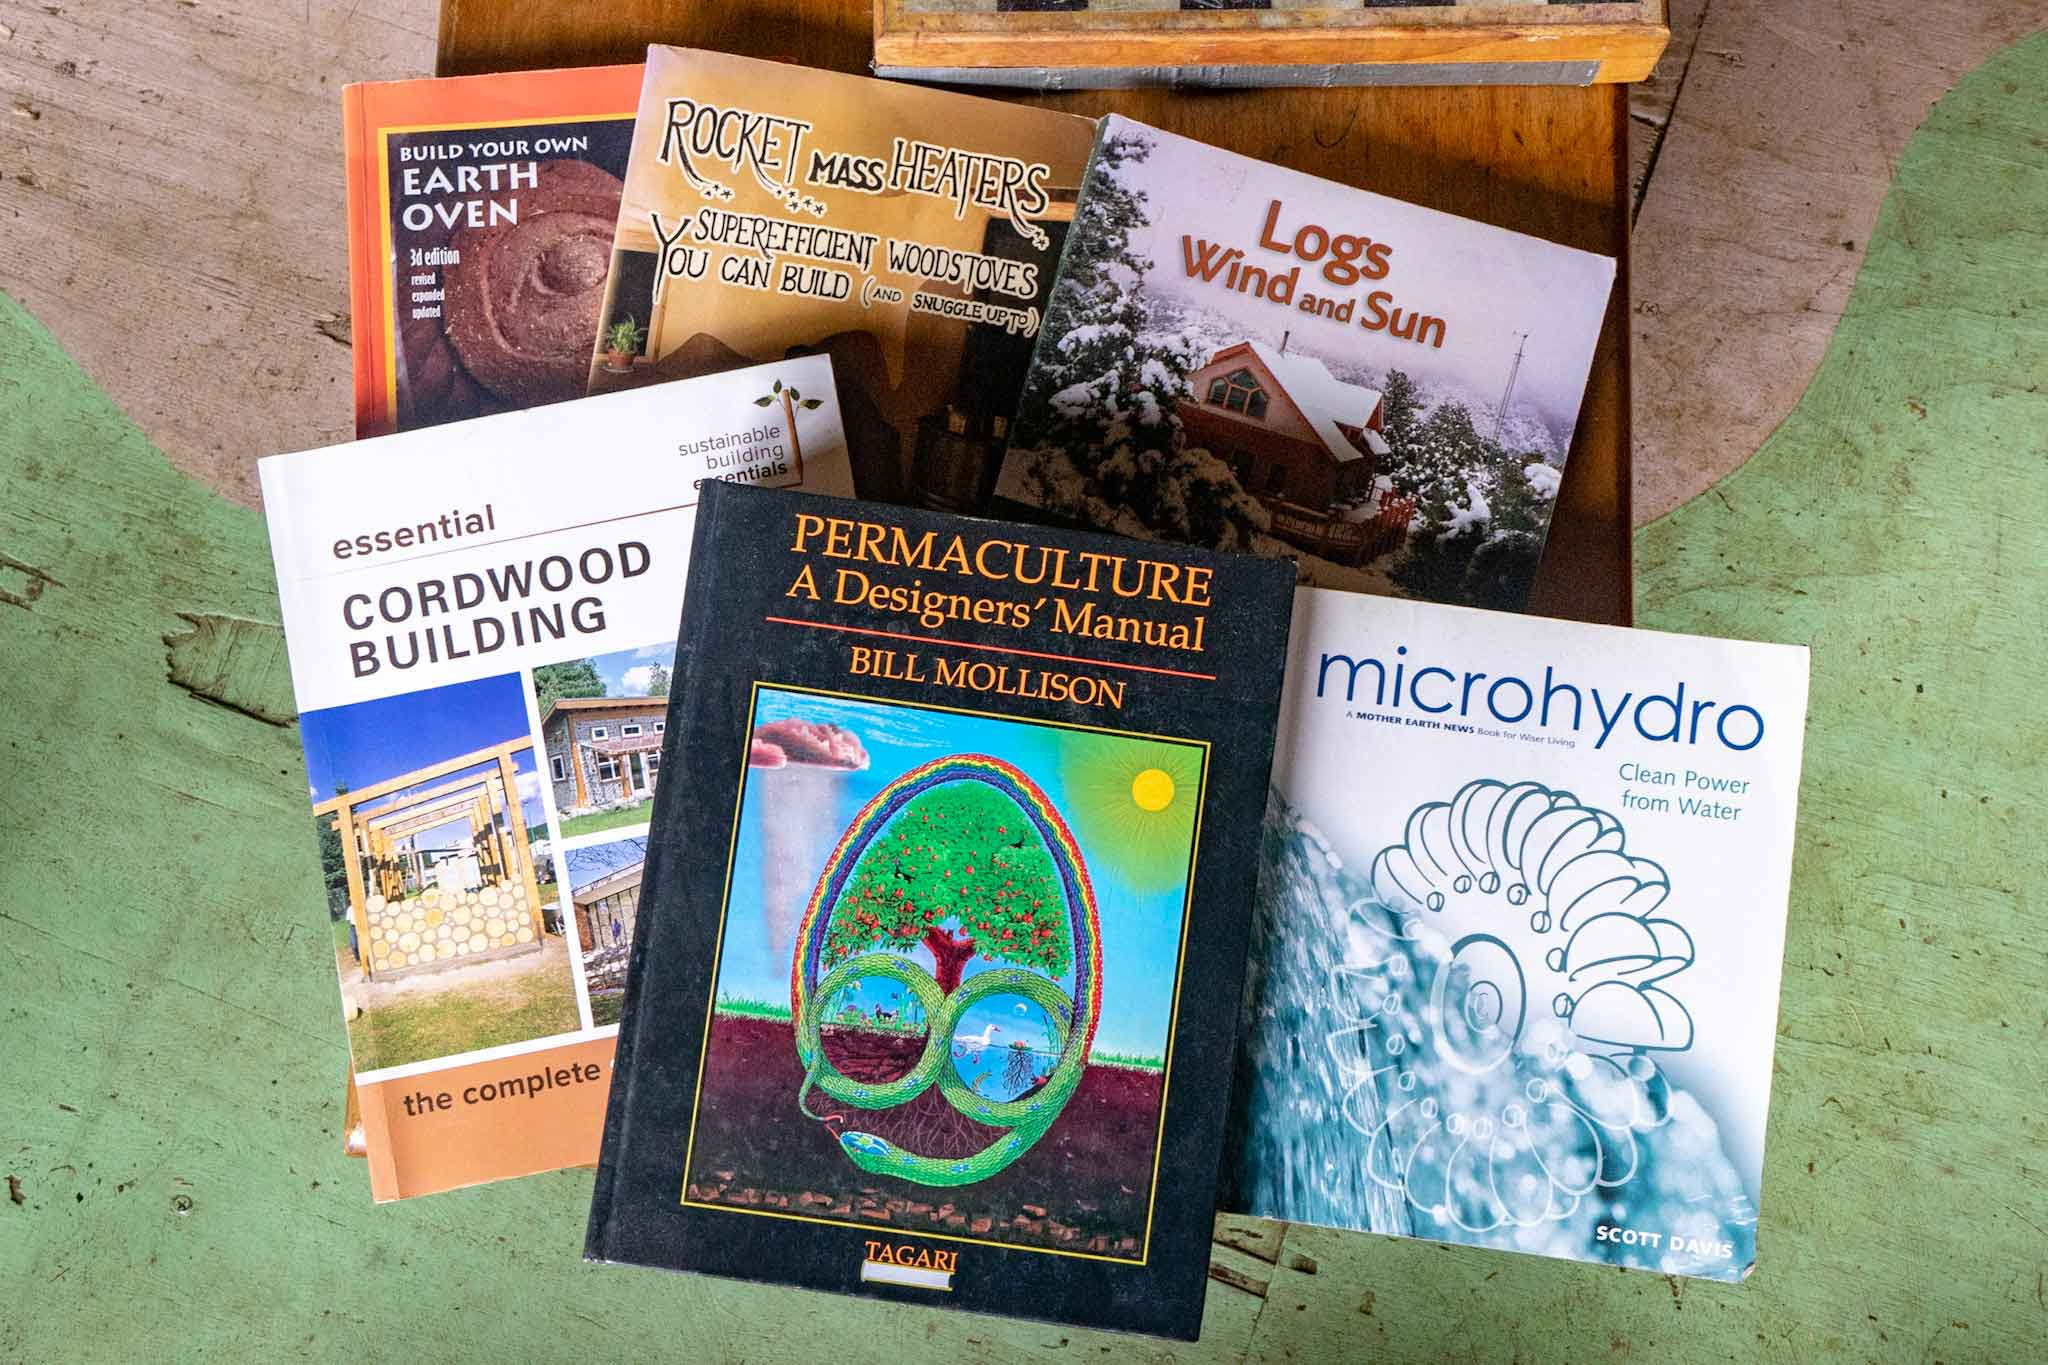 books on permaculture, hydro-power, cordwood building, and heated furniture